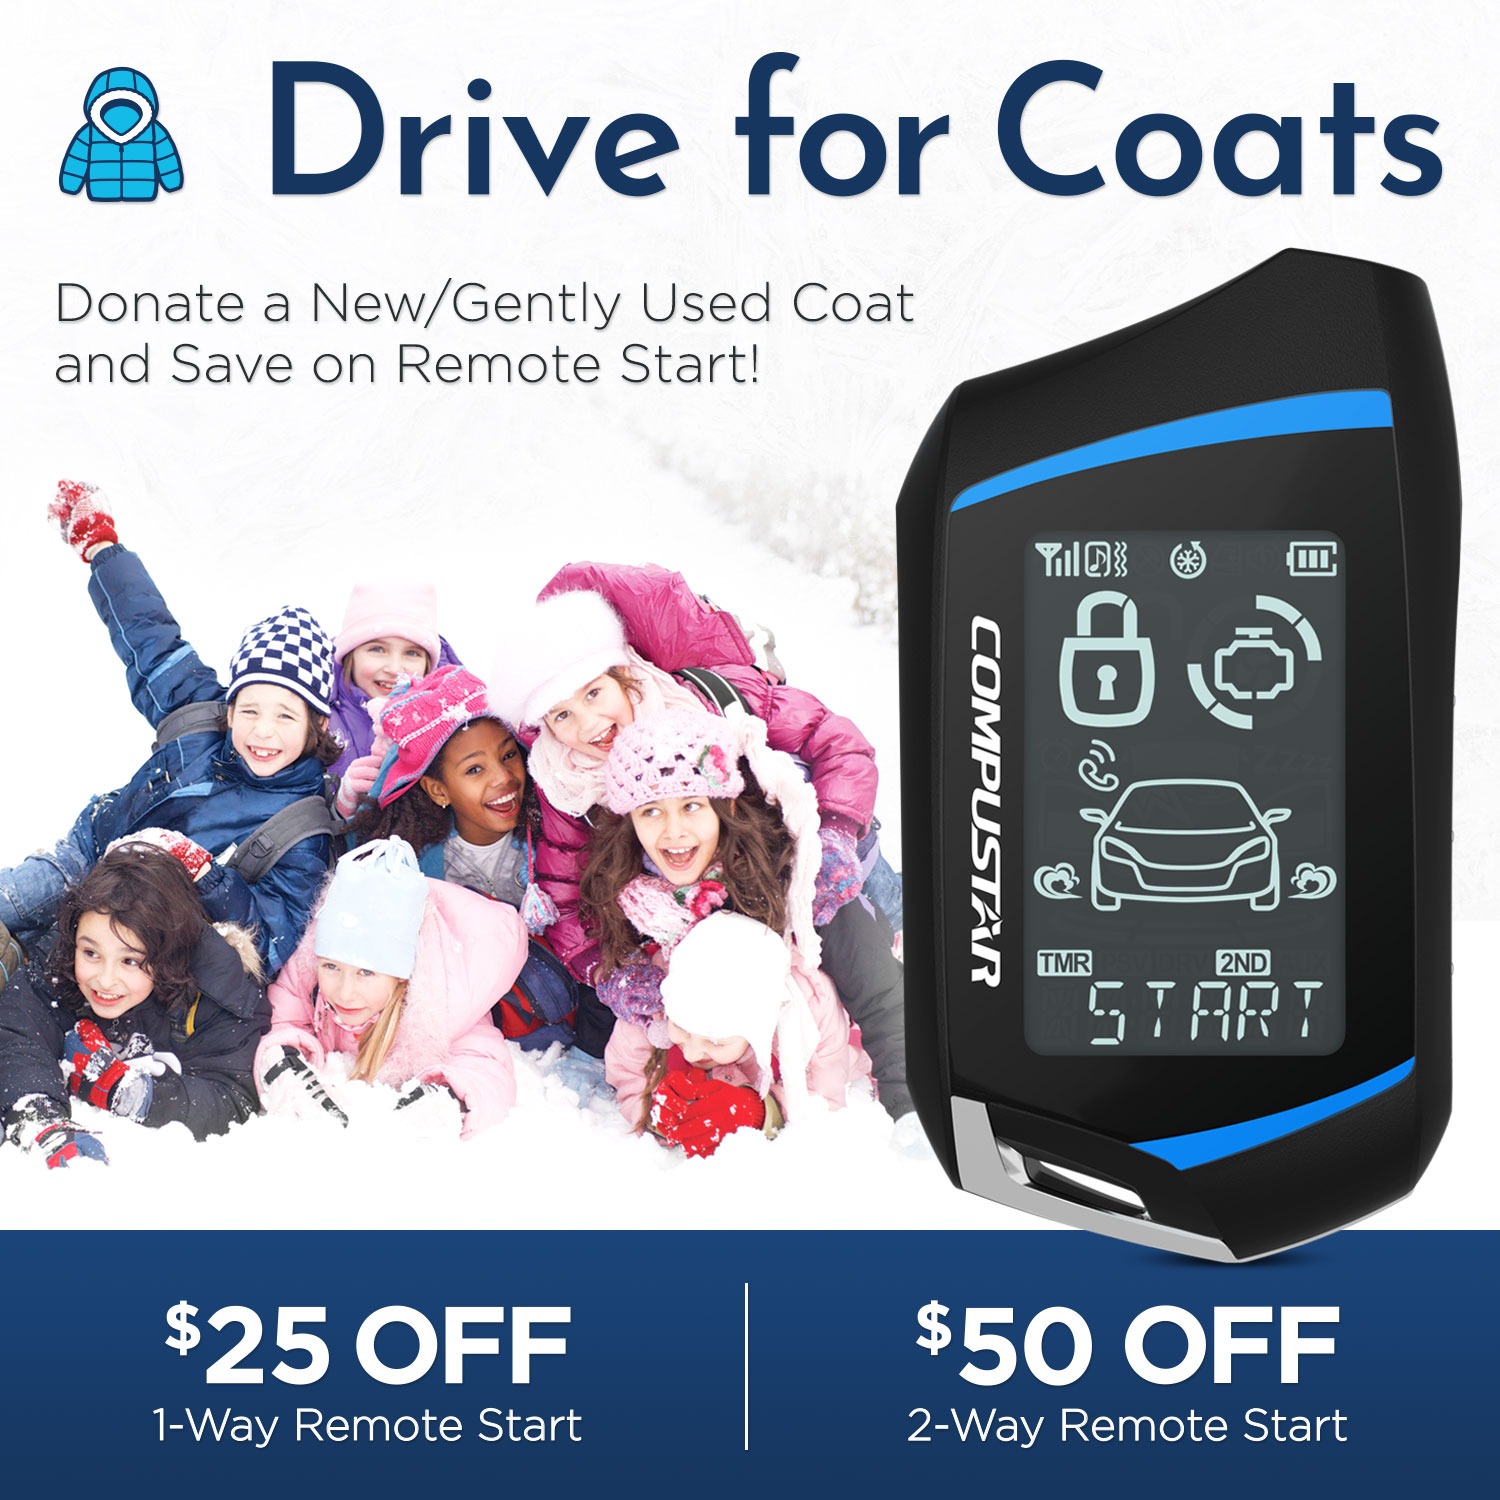 In Action Drive for Coats